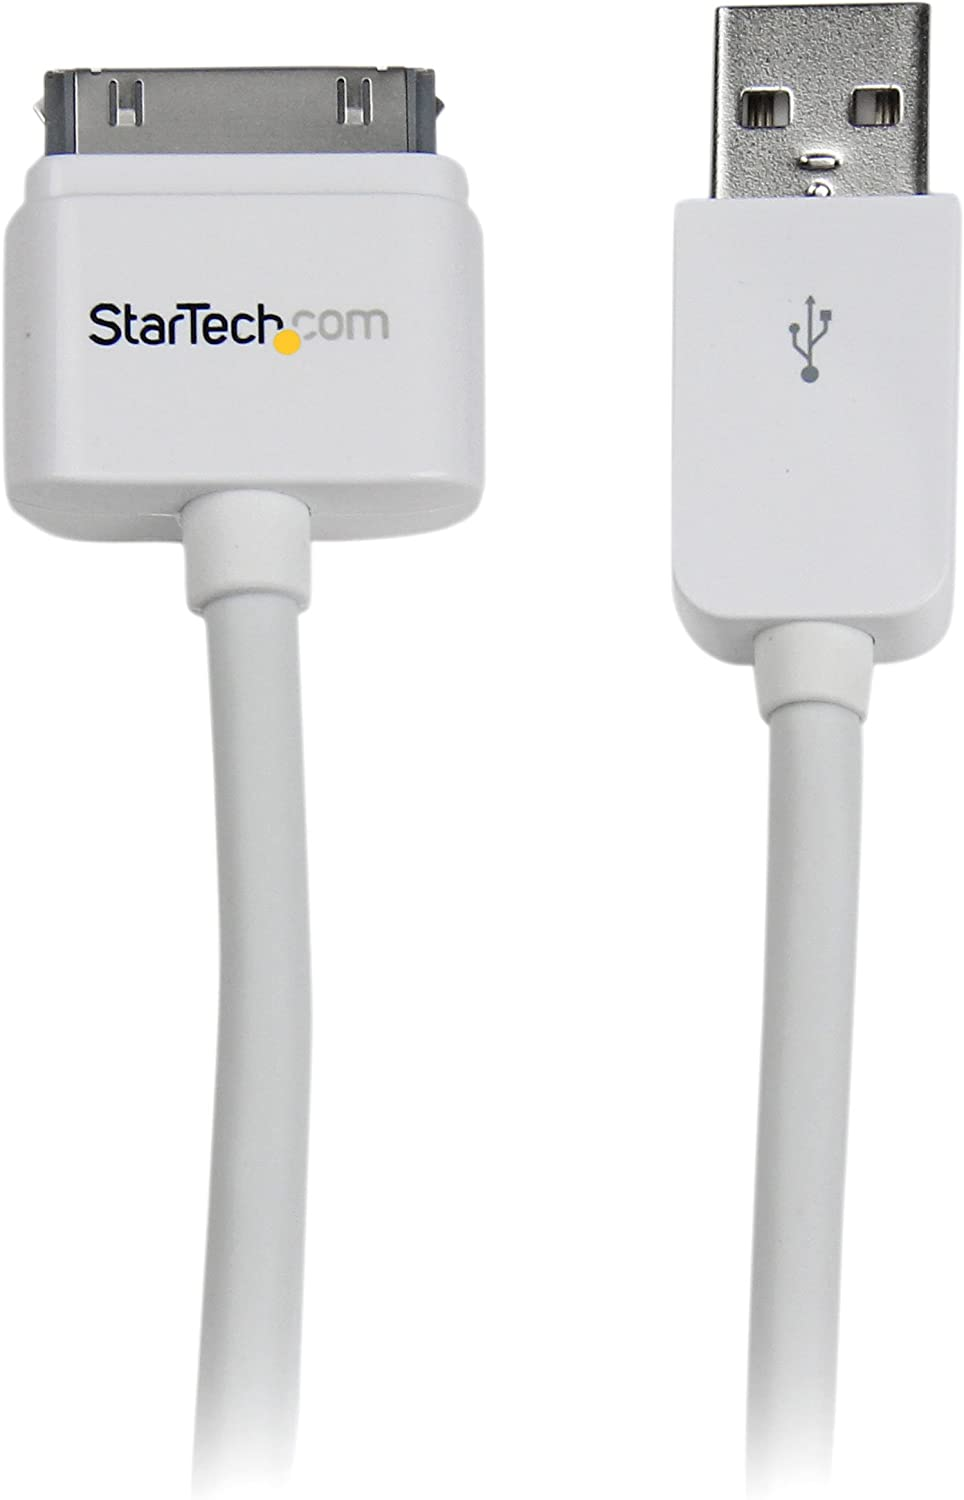 StarTech.com 3m (10 ft) Long Apple 30-pin Dock Connector to USB Cable for iPhone iPod iPad with Stepped Connector (USB2ADC3M),White,9.84 ft